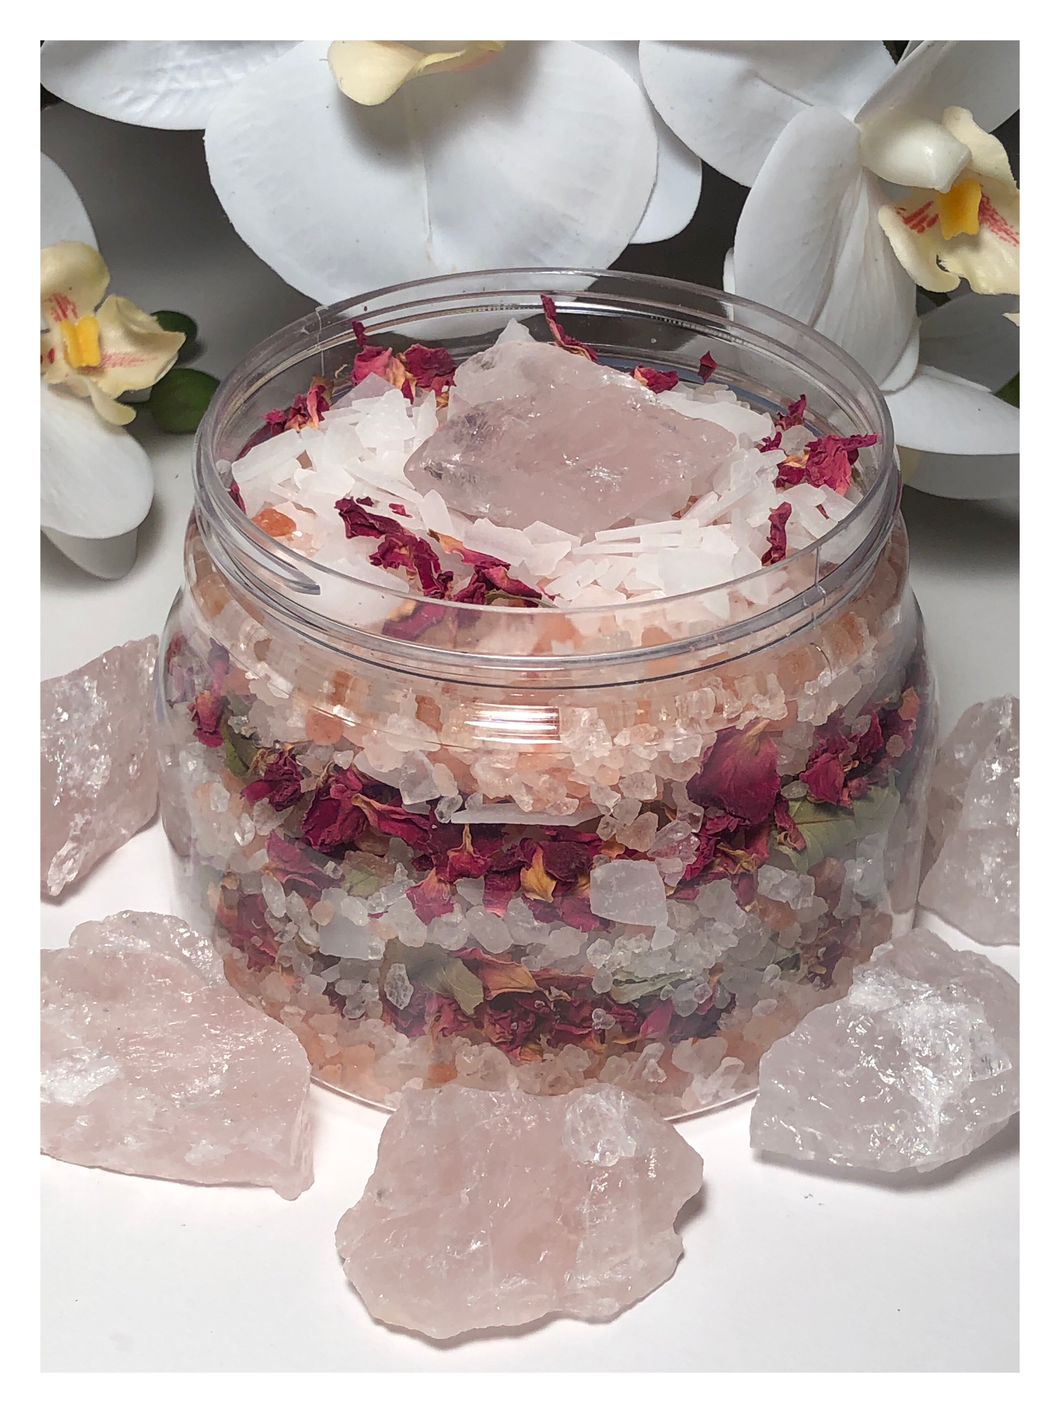 Herbal Self Love Rose Quartz Bath Soak